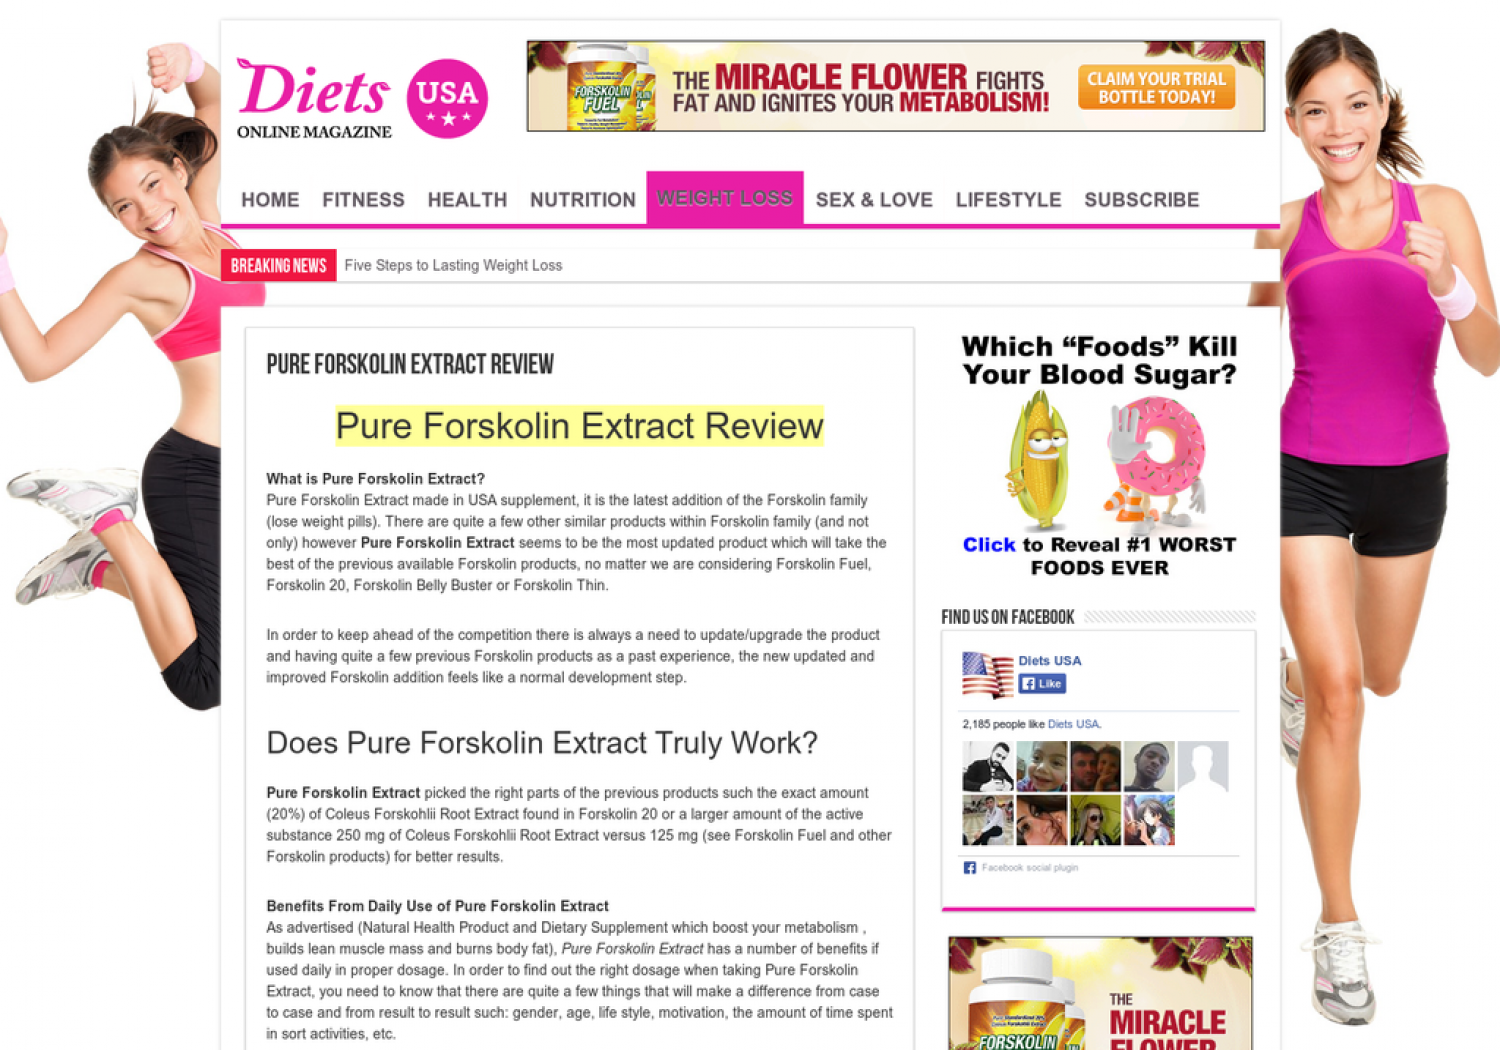 Pure Forskolin Extract Review Infographic